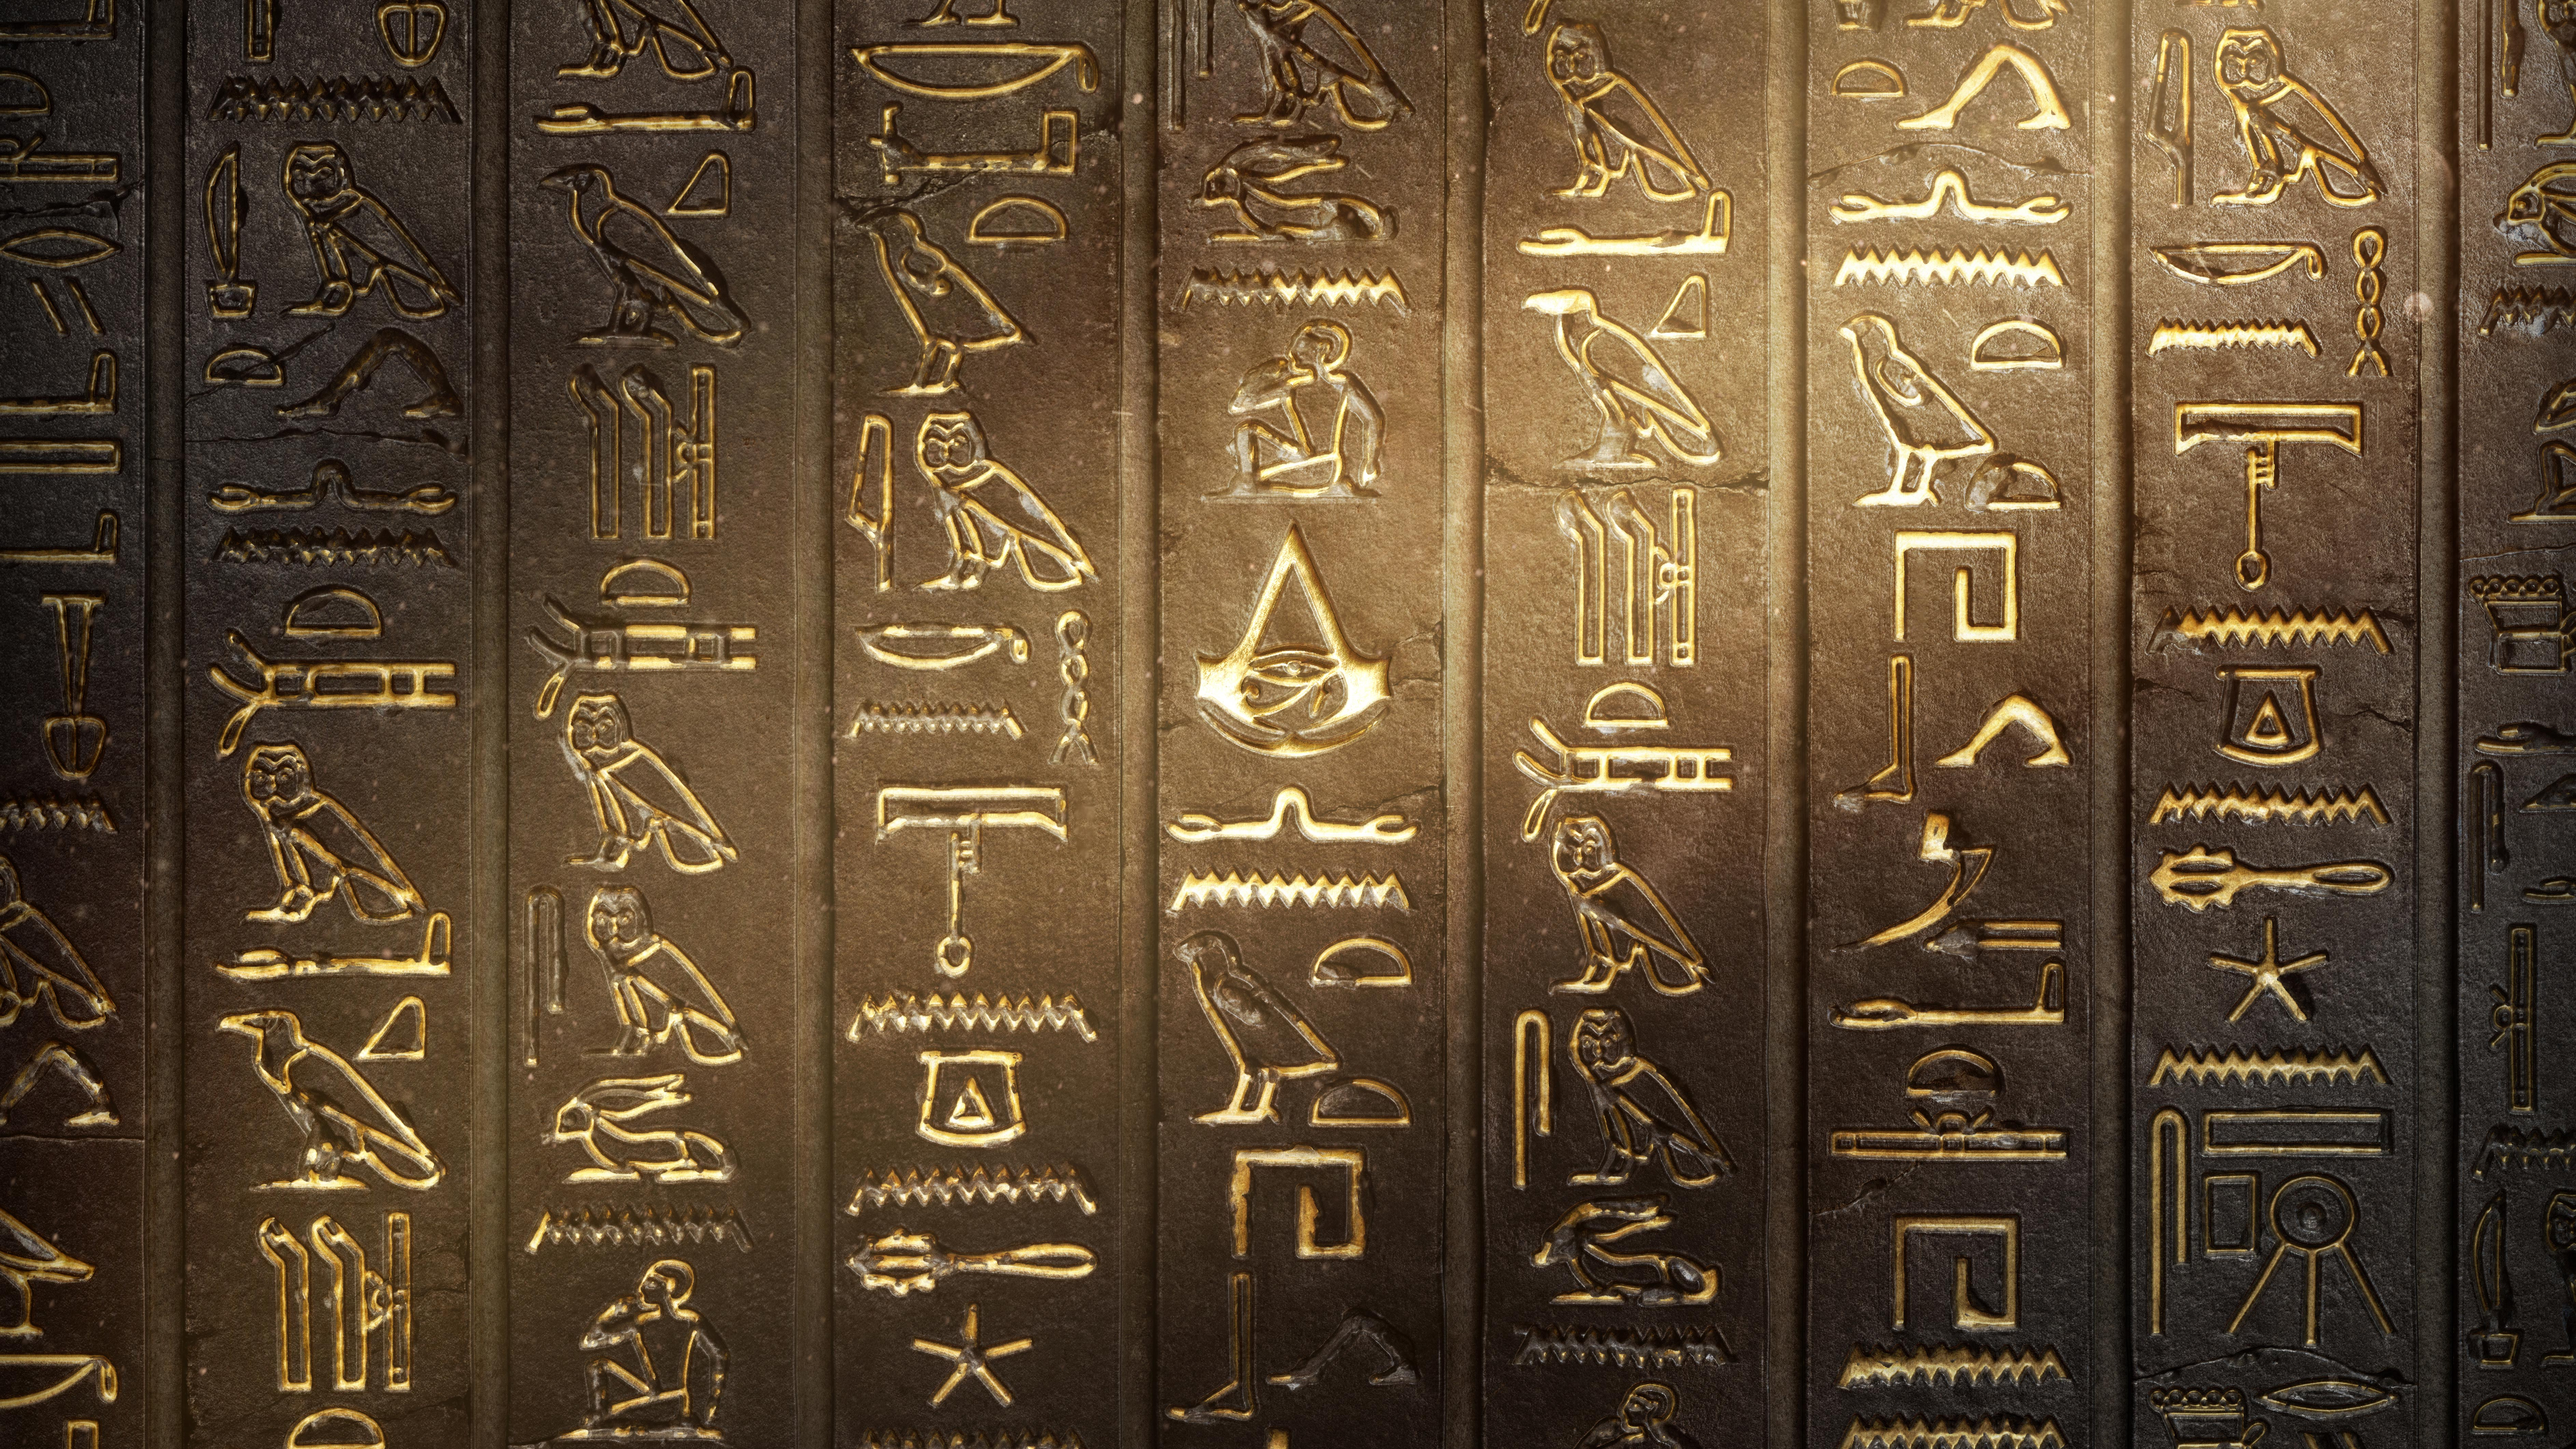 Hieroglyphs Assassins Creed Origins Hd Games 4k Wallpapers Images Backgrounds Photos And Pictures